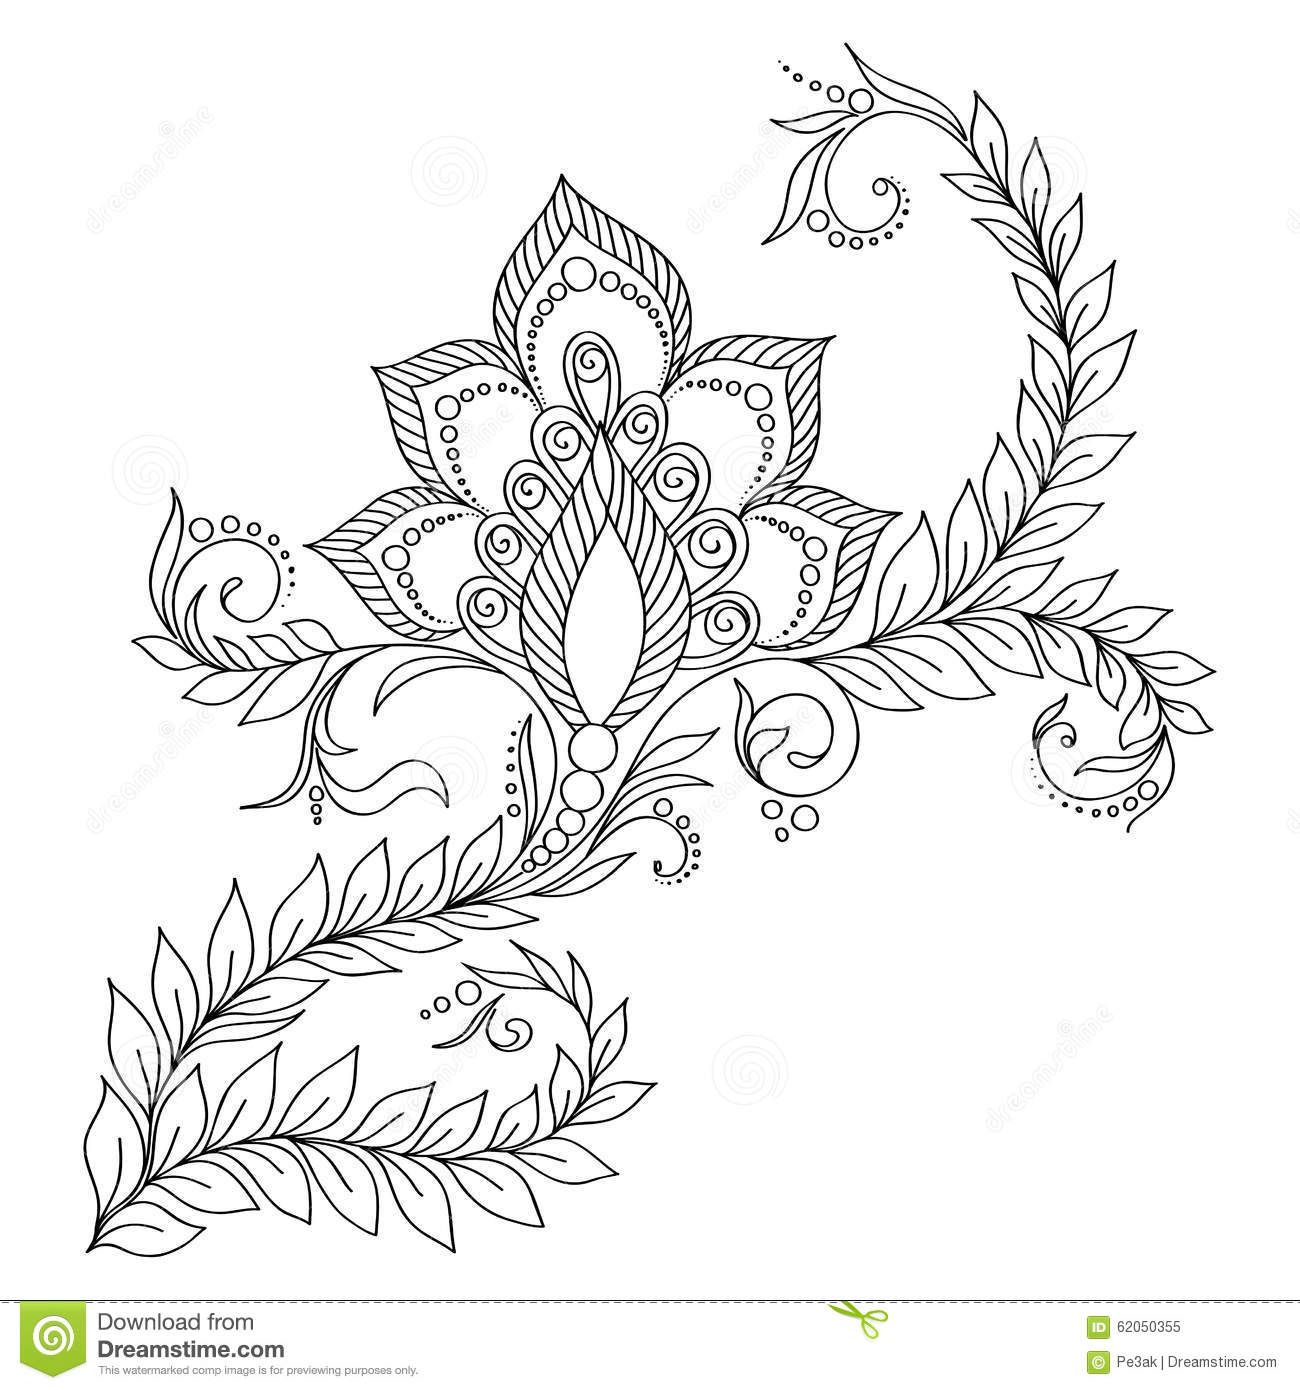 Pattern For Coloring Book Pages Kids And AdultsVector Abstract Floral Elements In Indian Style Henna Mehndi Tattoo Doodles